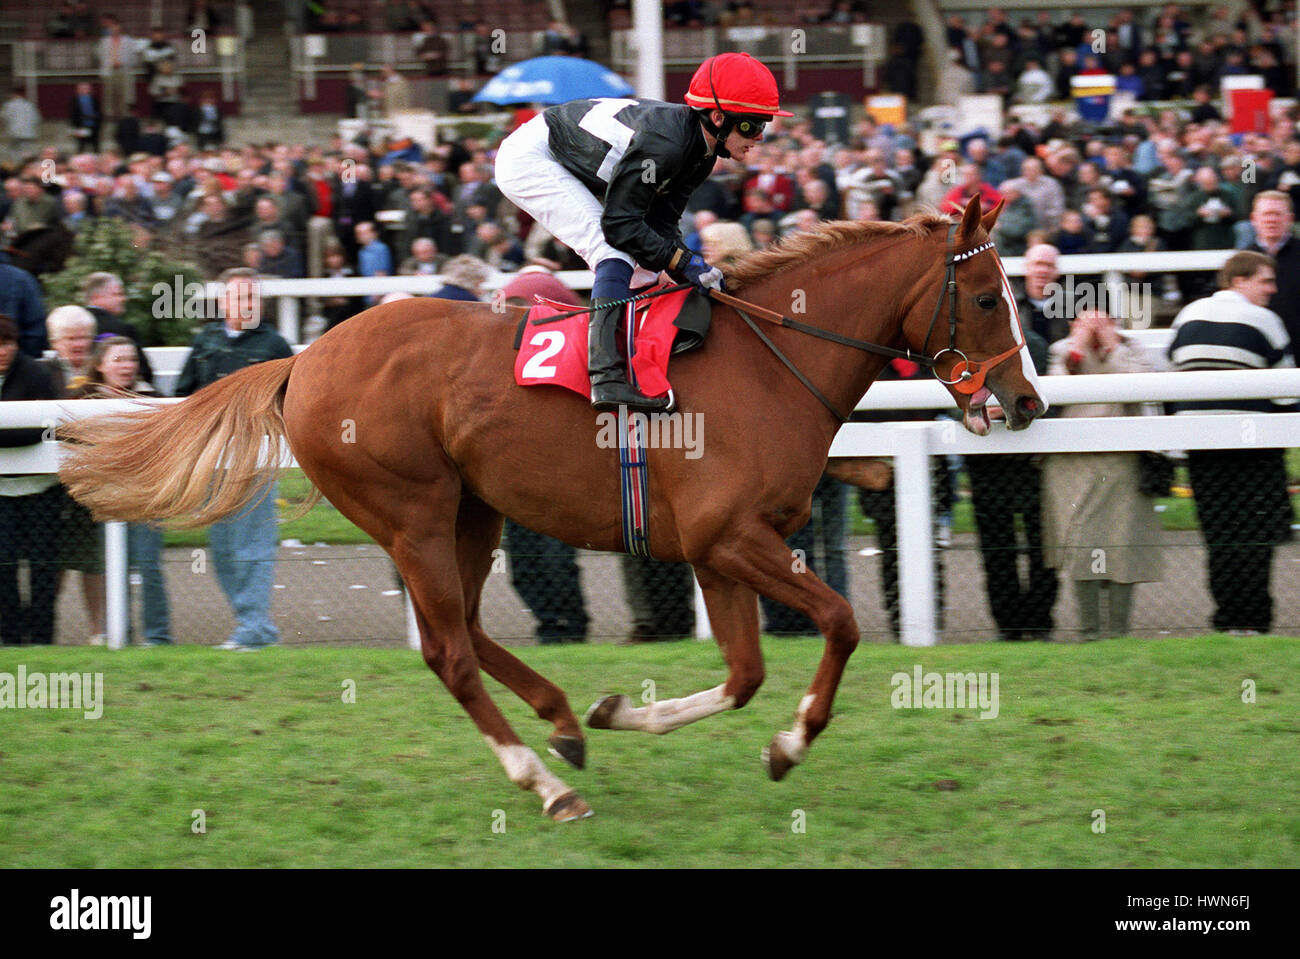 HURRICANE FLOYD RIDDEN BY A.NICHOLLS DONCASTER RACECOURSE DONCASTER 23 March 2002 - Stock Image